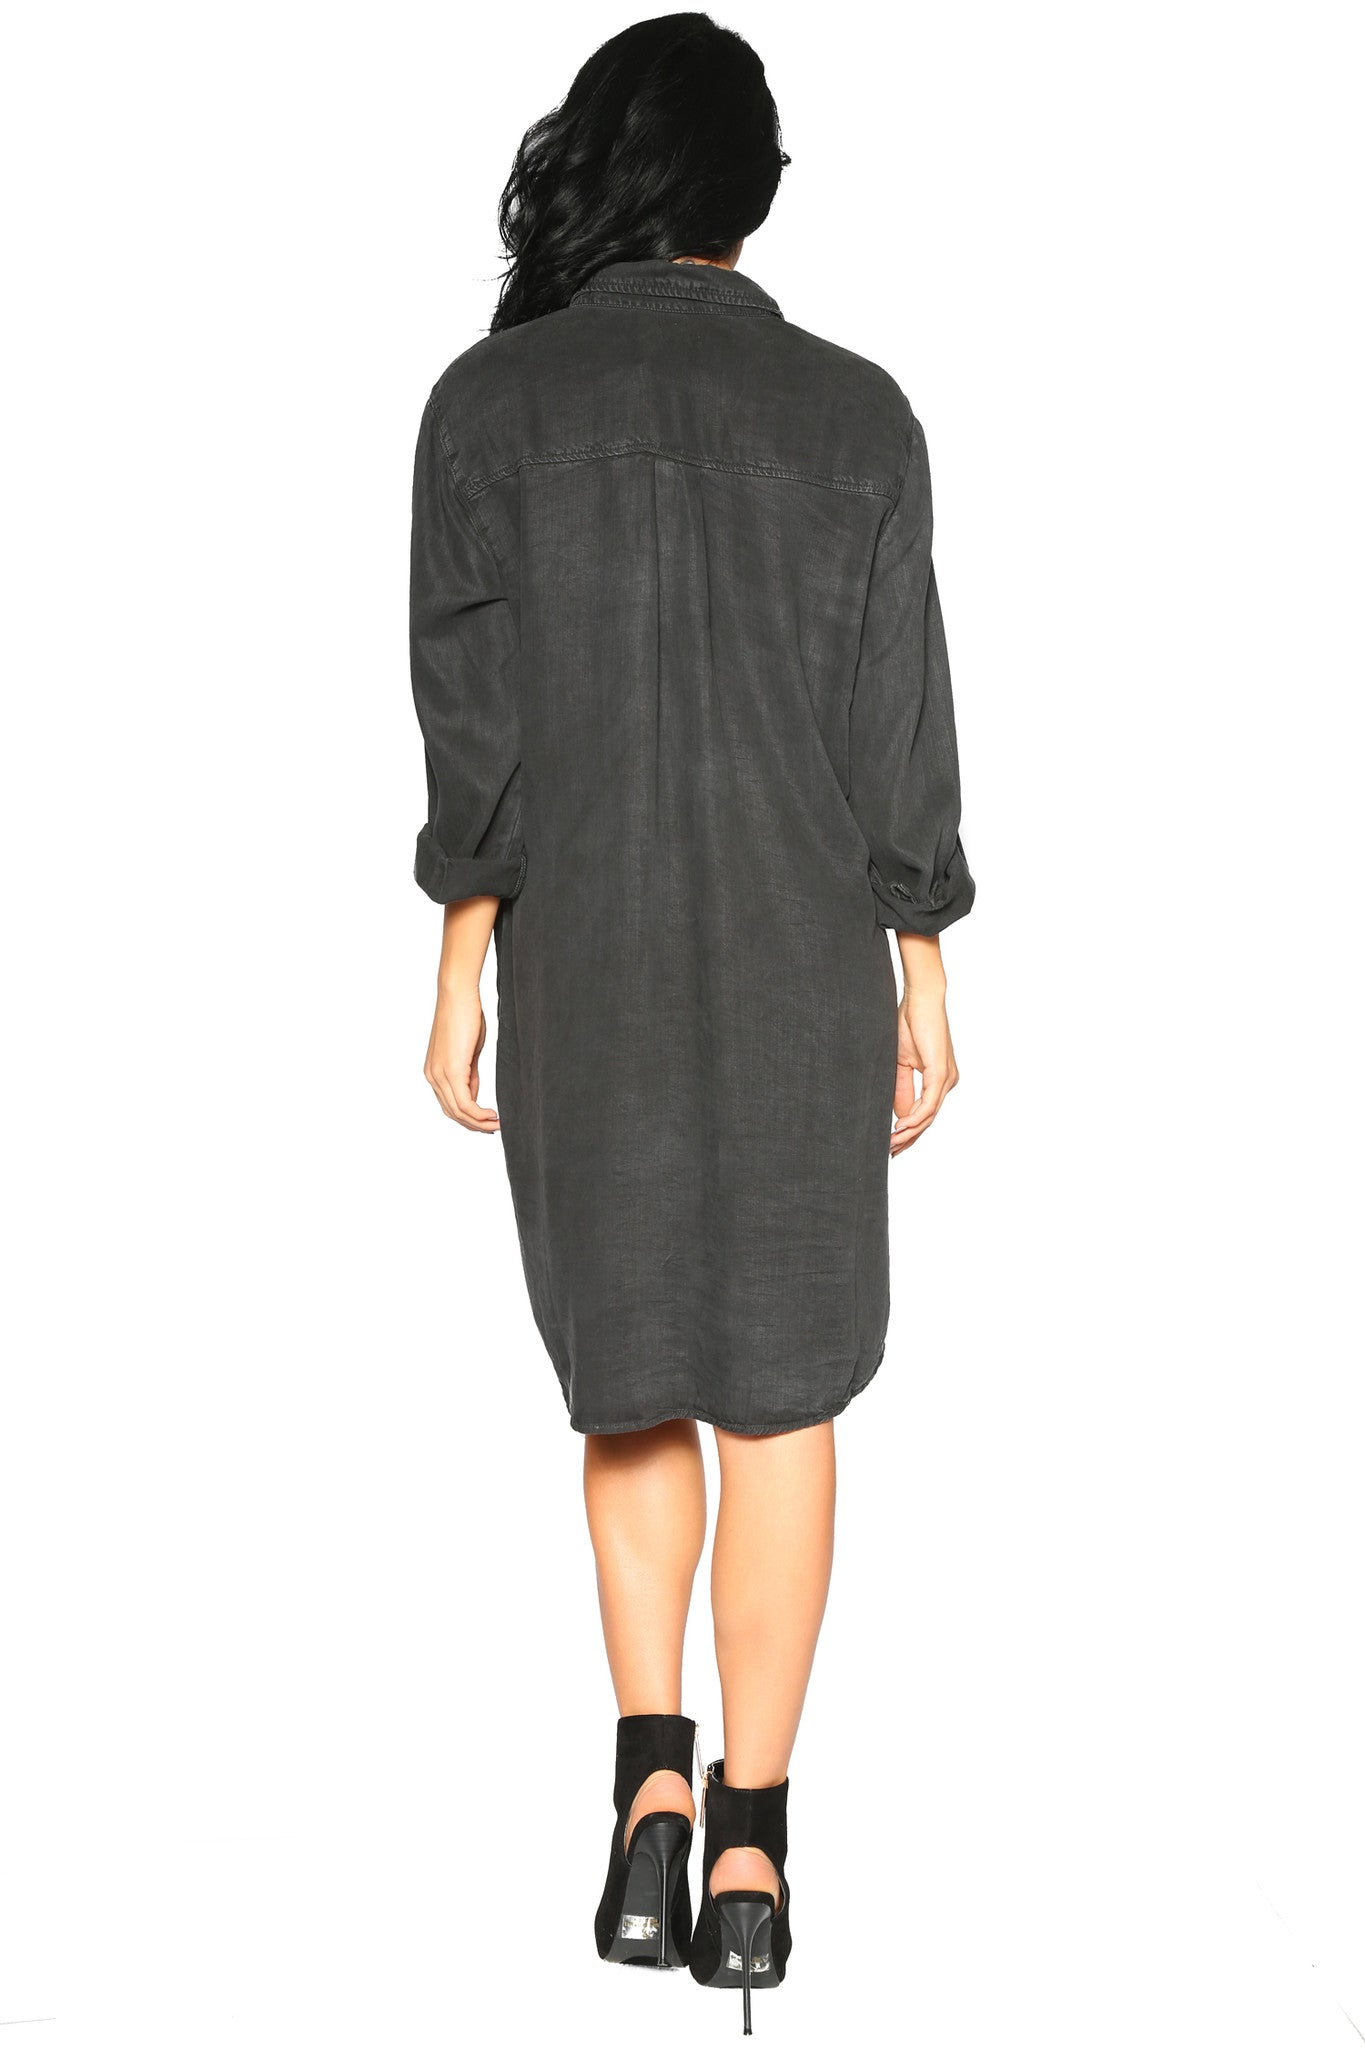 NATASHA SHIRT DRESS - Glam Envy - 3